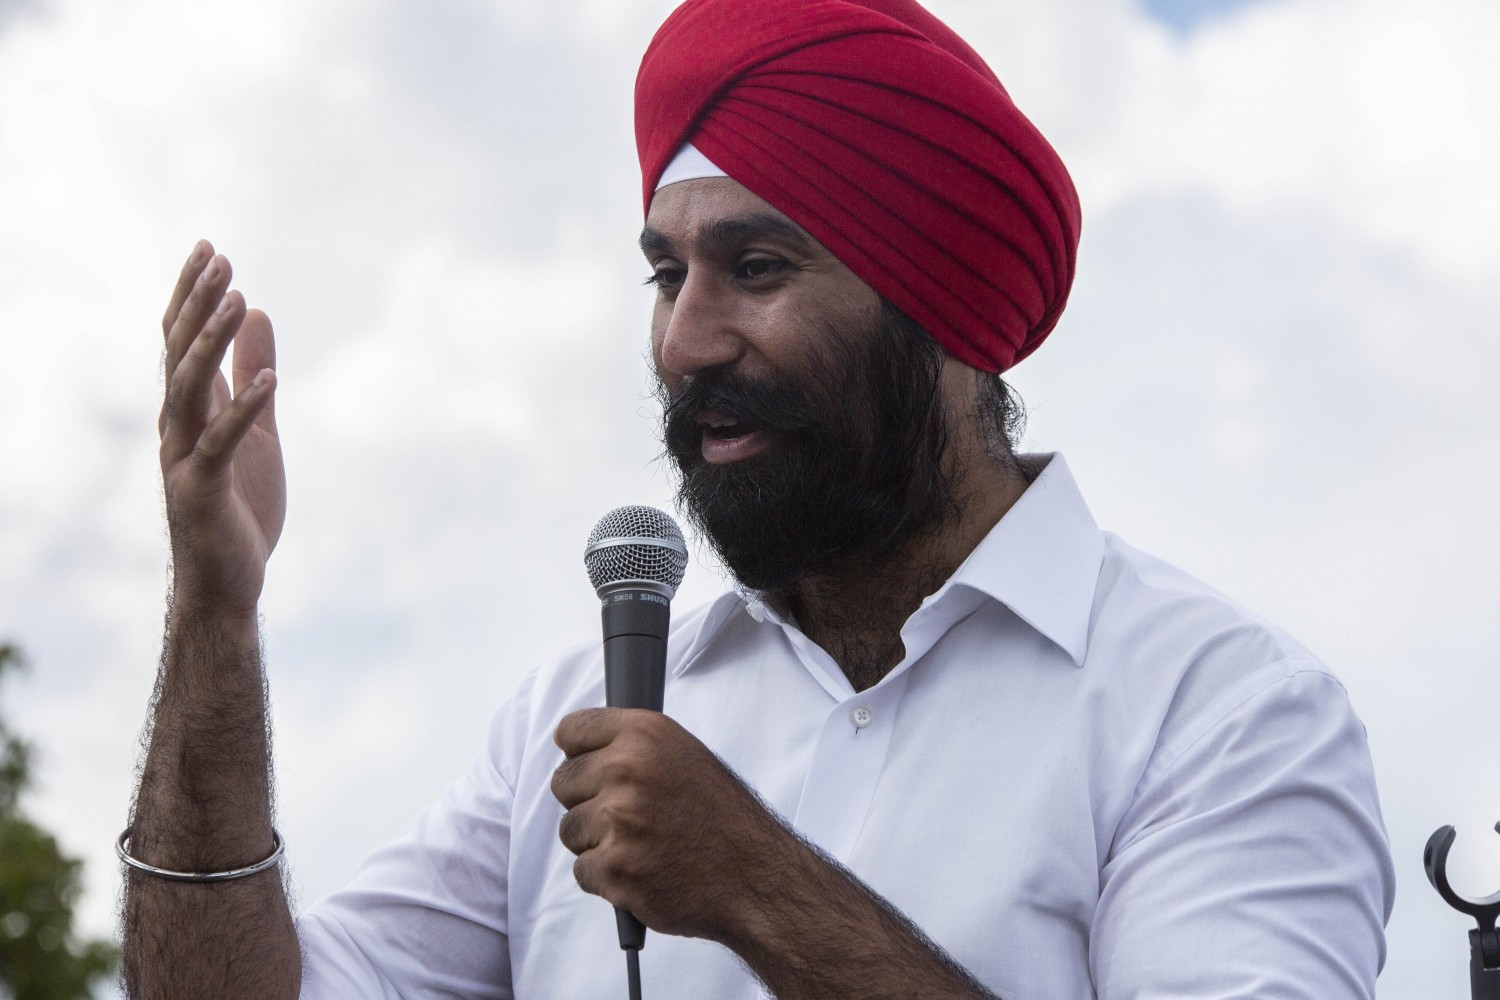 Update: Brampton MP Raj Grewal resigned over gambling problem